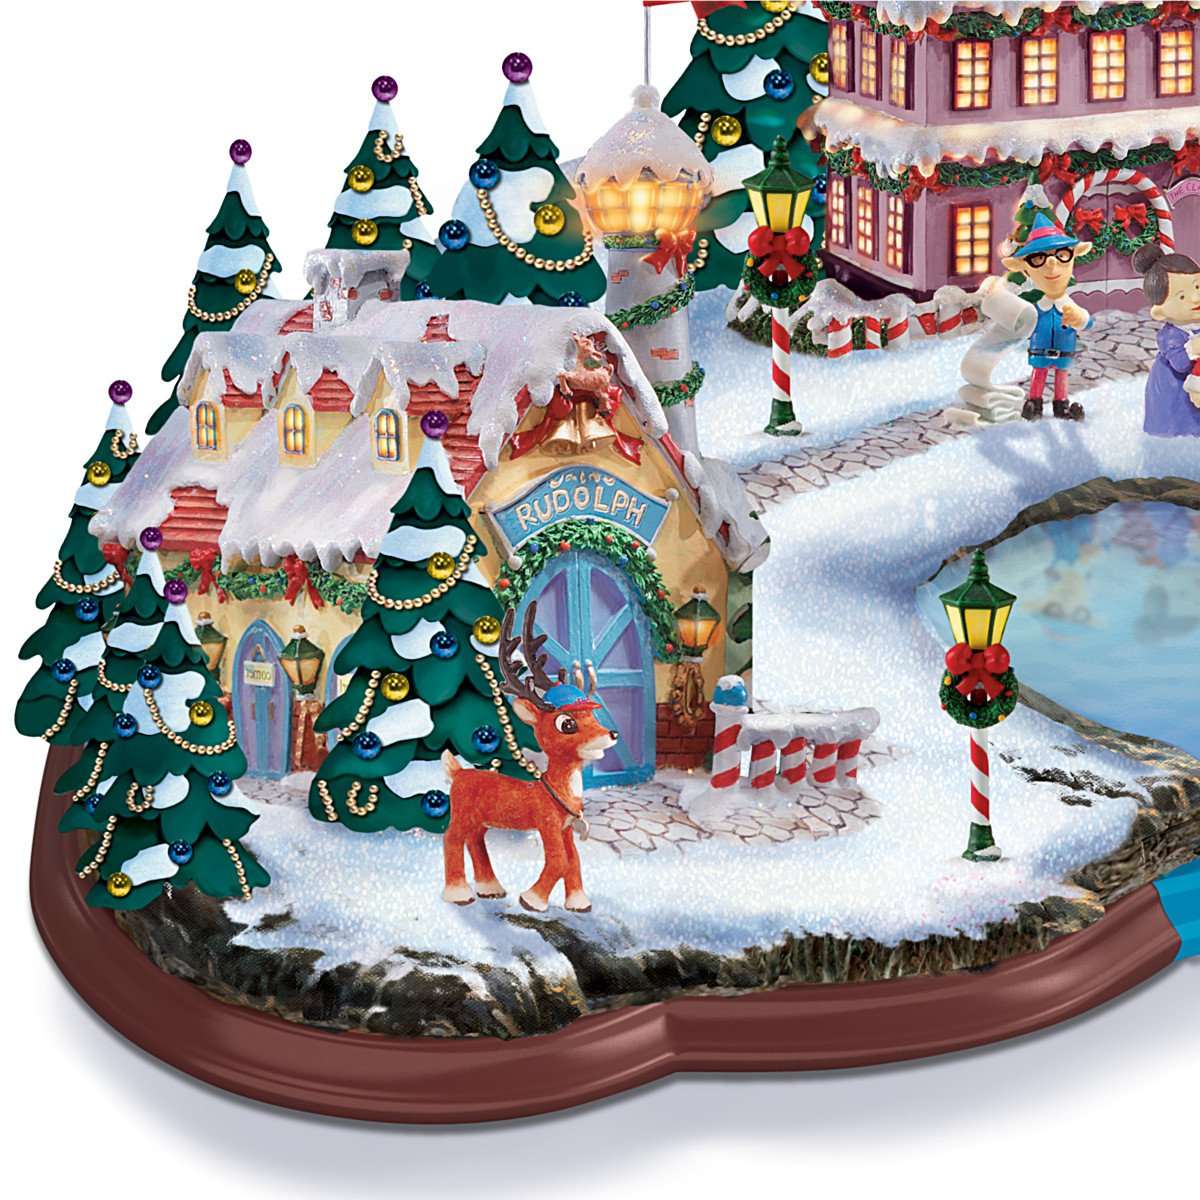 Amazon.com: Rudolph the Red Nosed Reindeer Light Up Village ...